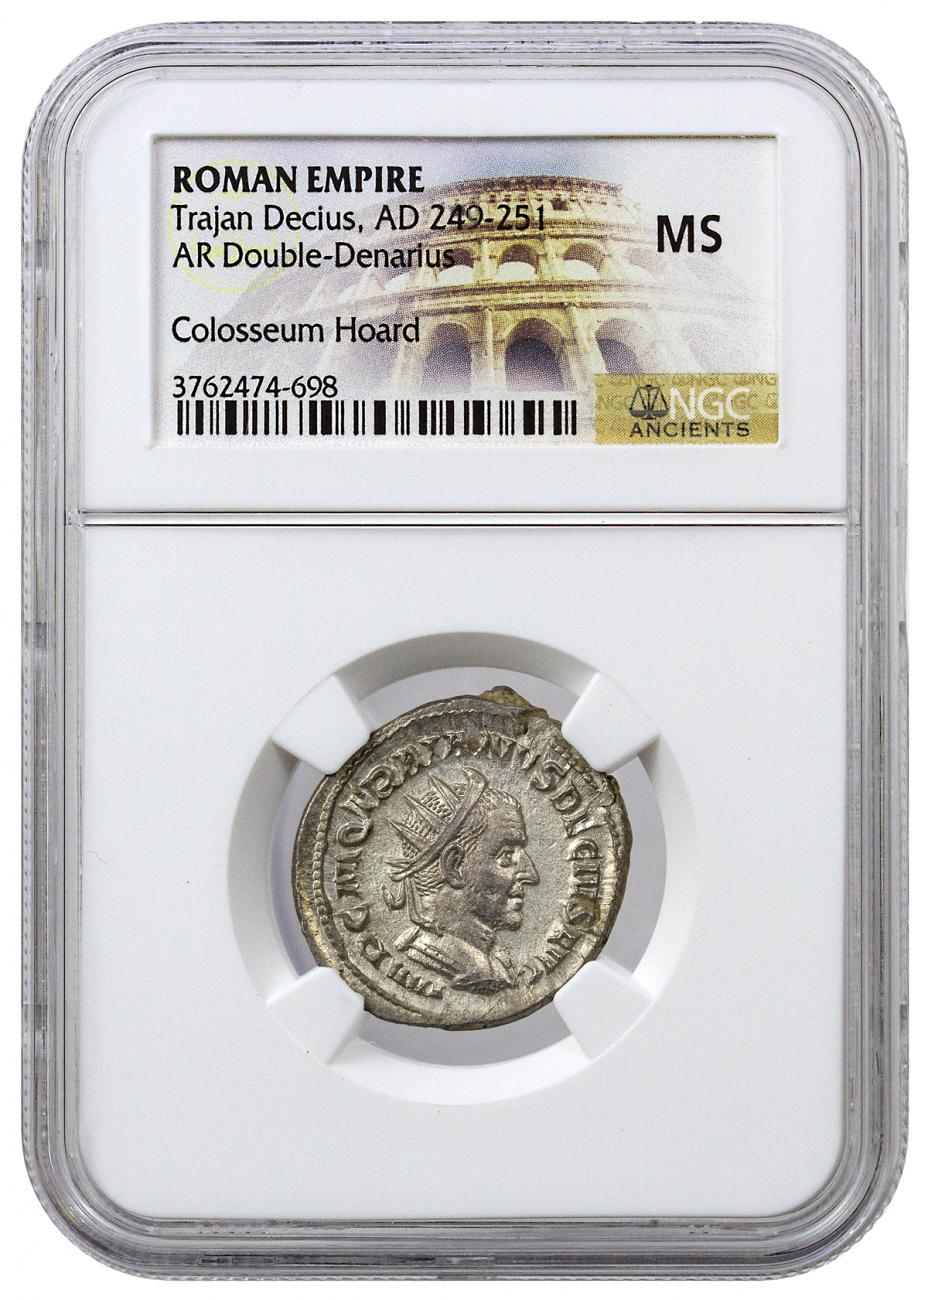 Roman Empire Silver Double Denarius of Trajan Decius (AD 249-251) - NGC MS